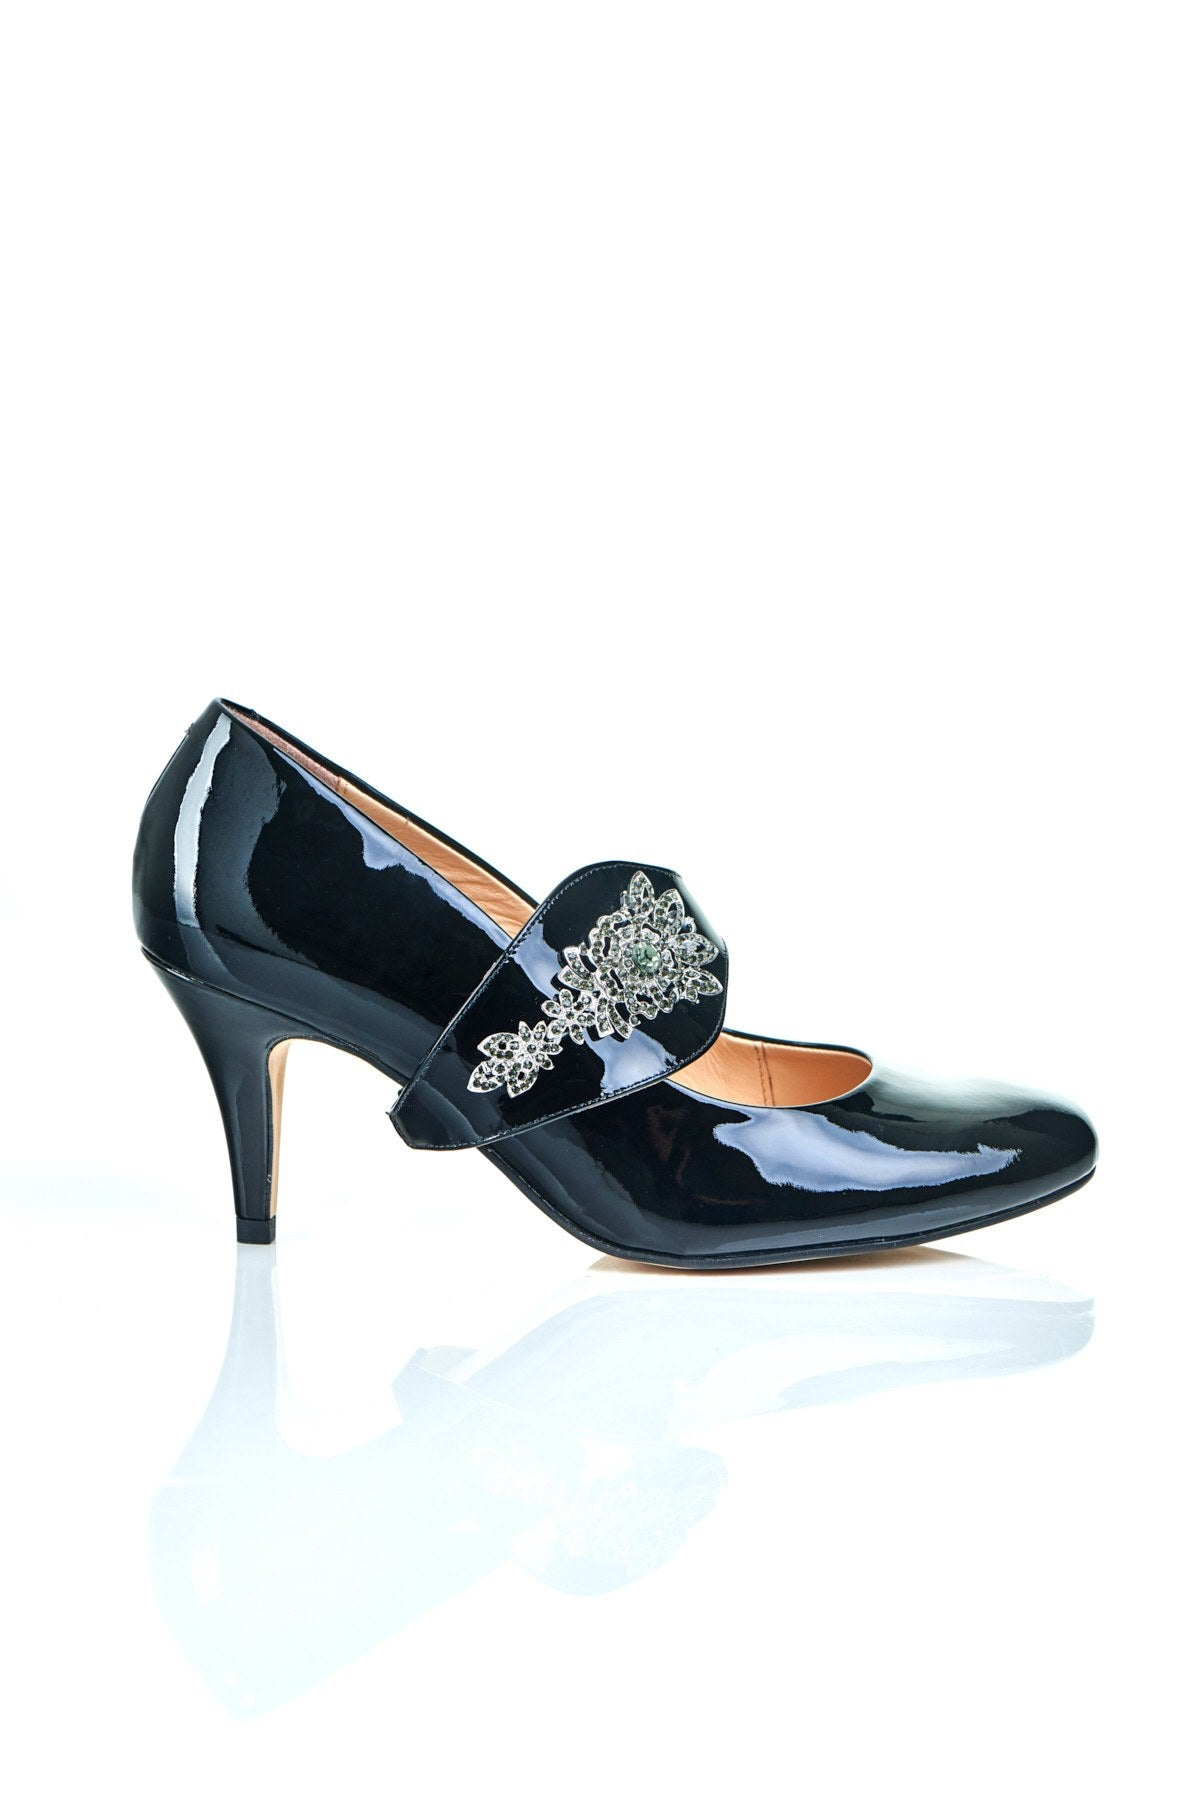 The Moon is Mine in Black Gems - 18 Hour Heels - Black Leather - Shoes by Shaherazad